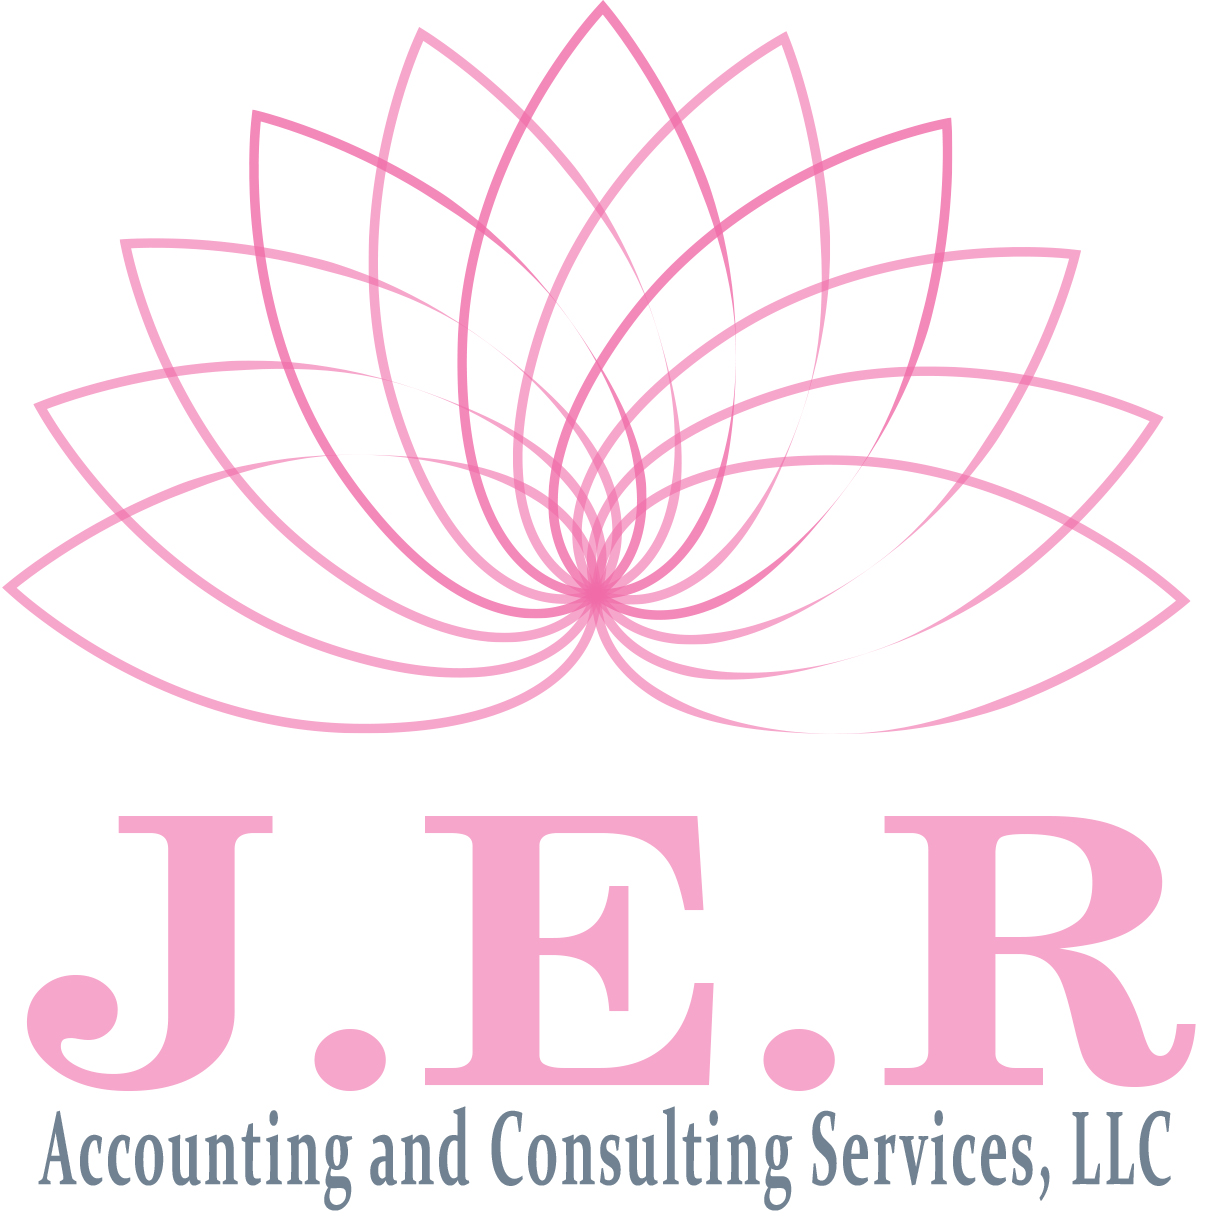 J.E.R Accounting and Consulting Services image